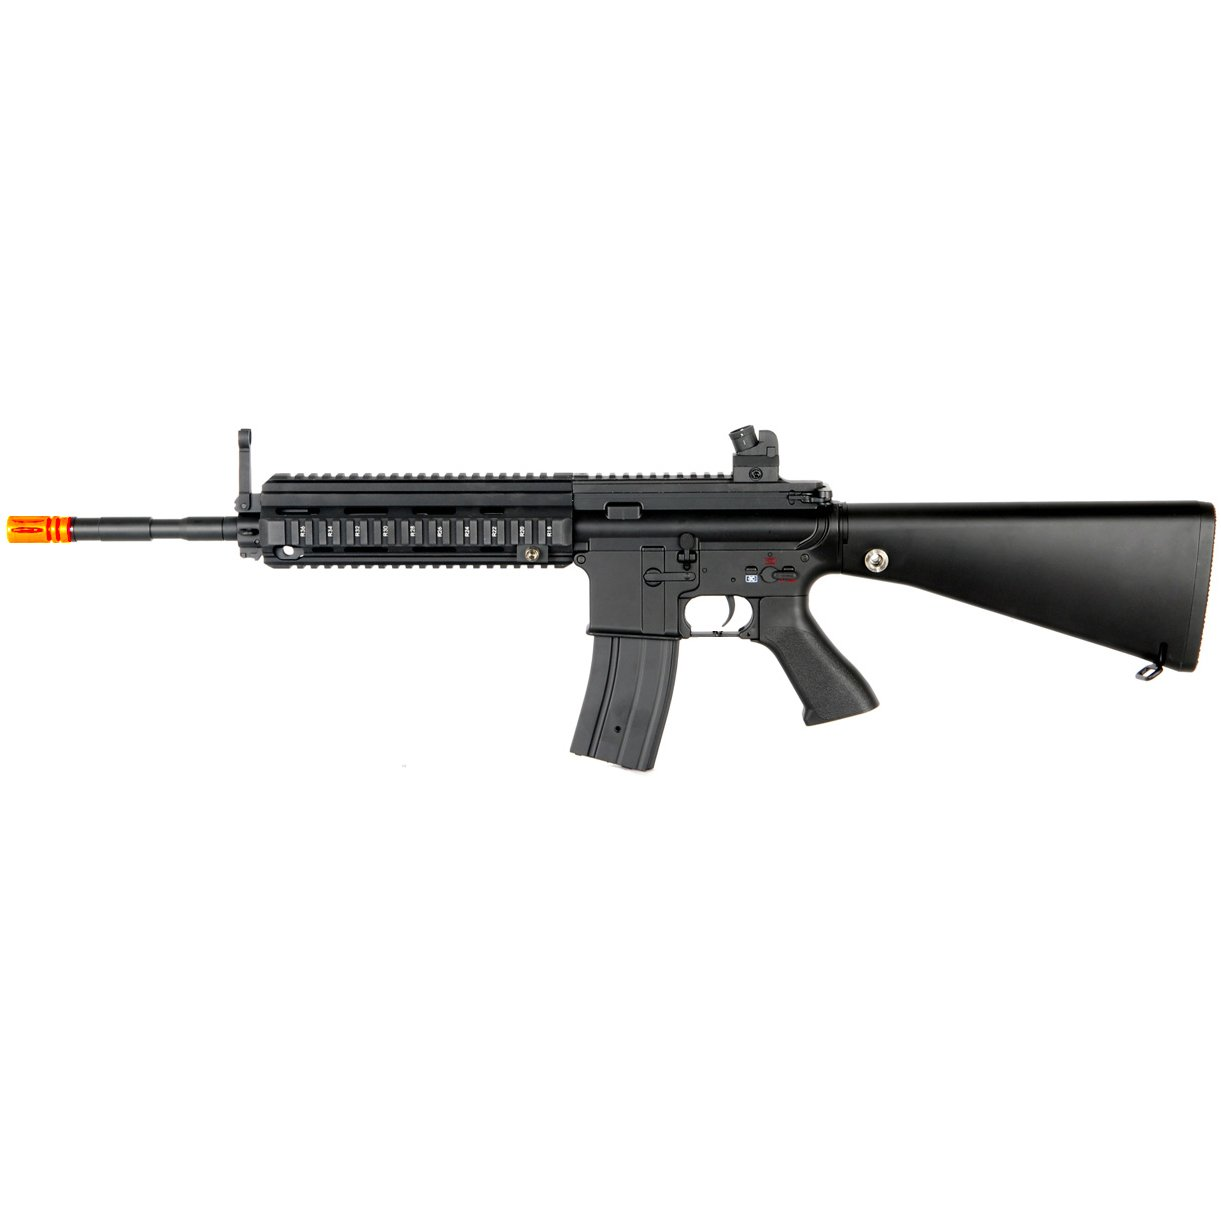 MetalTac JG FB-6623 614 Electric Airsoft Gun with Rail Mounting System, Full Metal Body, Metal Gearbox Version 2, Auto AEG, Upgraded Powerful Spring 410 Fps with .20g BBs